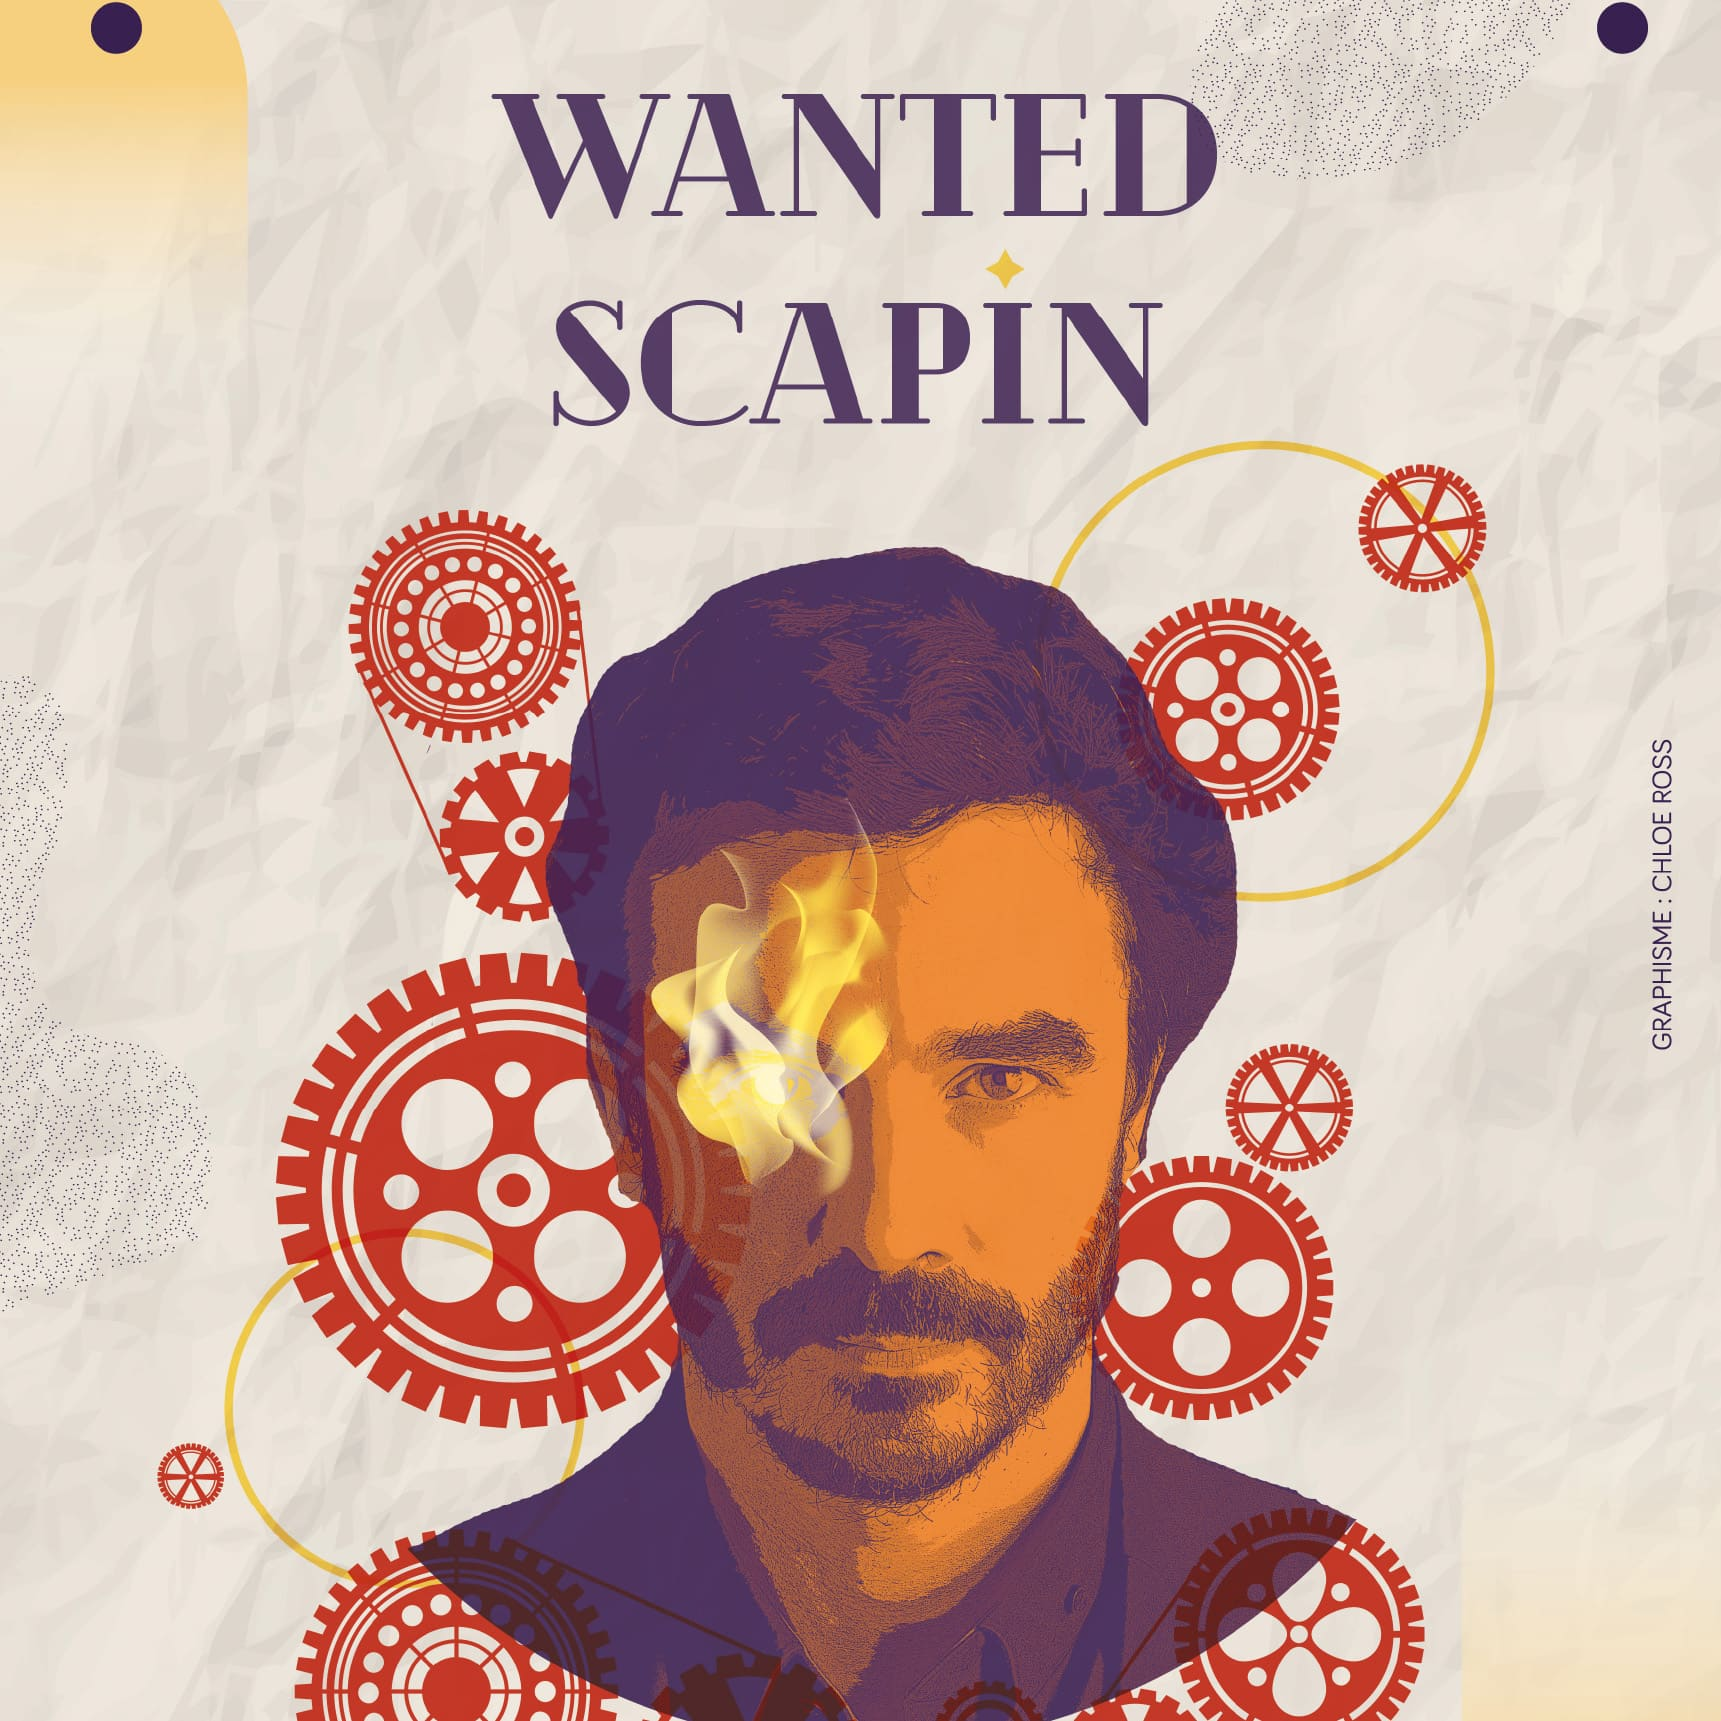 Wanted Scapin